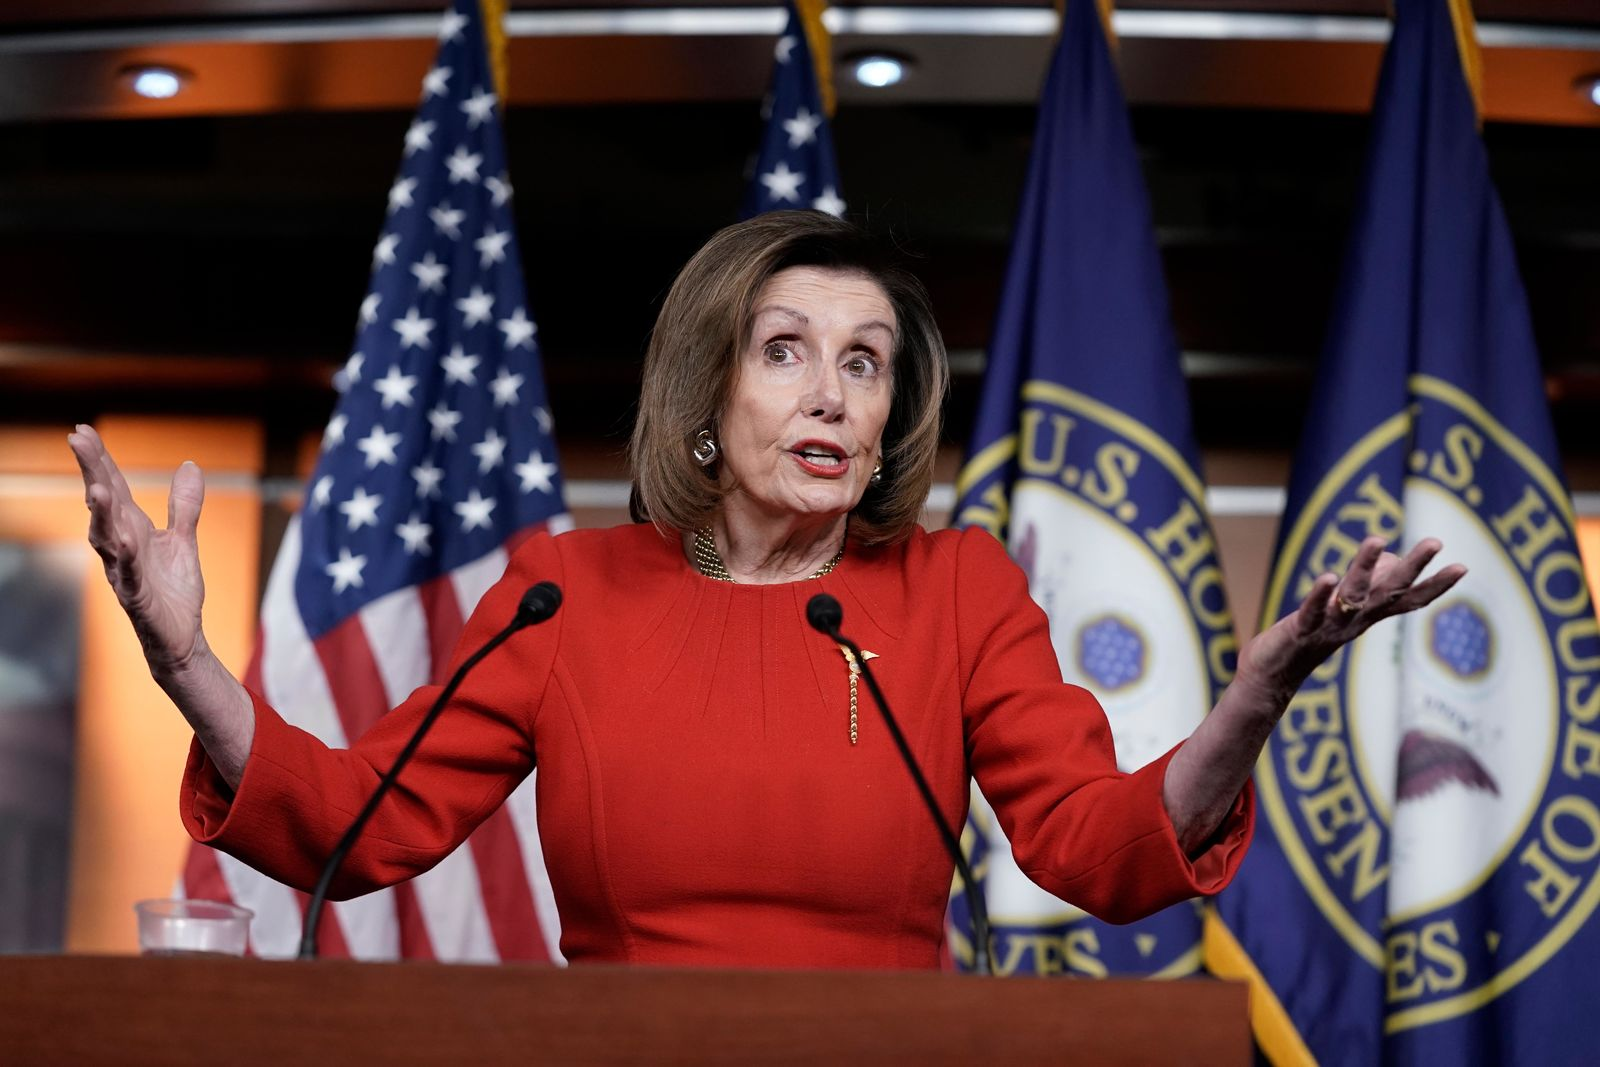 Speaker of the House Nancy Pelosi, D-Calif., meets with reporters on the morning after the House of Representatives voted to impeach President Donald Trump on charges of abuse of power and obstruction of Congress, at the Capitol in Washington, Wednesday, Dec. 18, 2019. (AP Photo/J. Scott Applewhite)